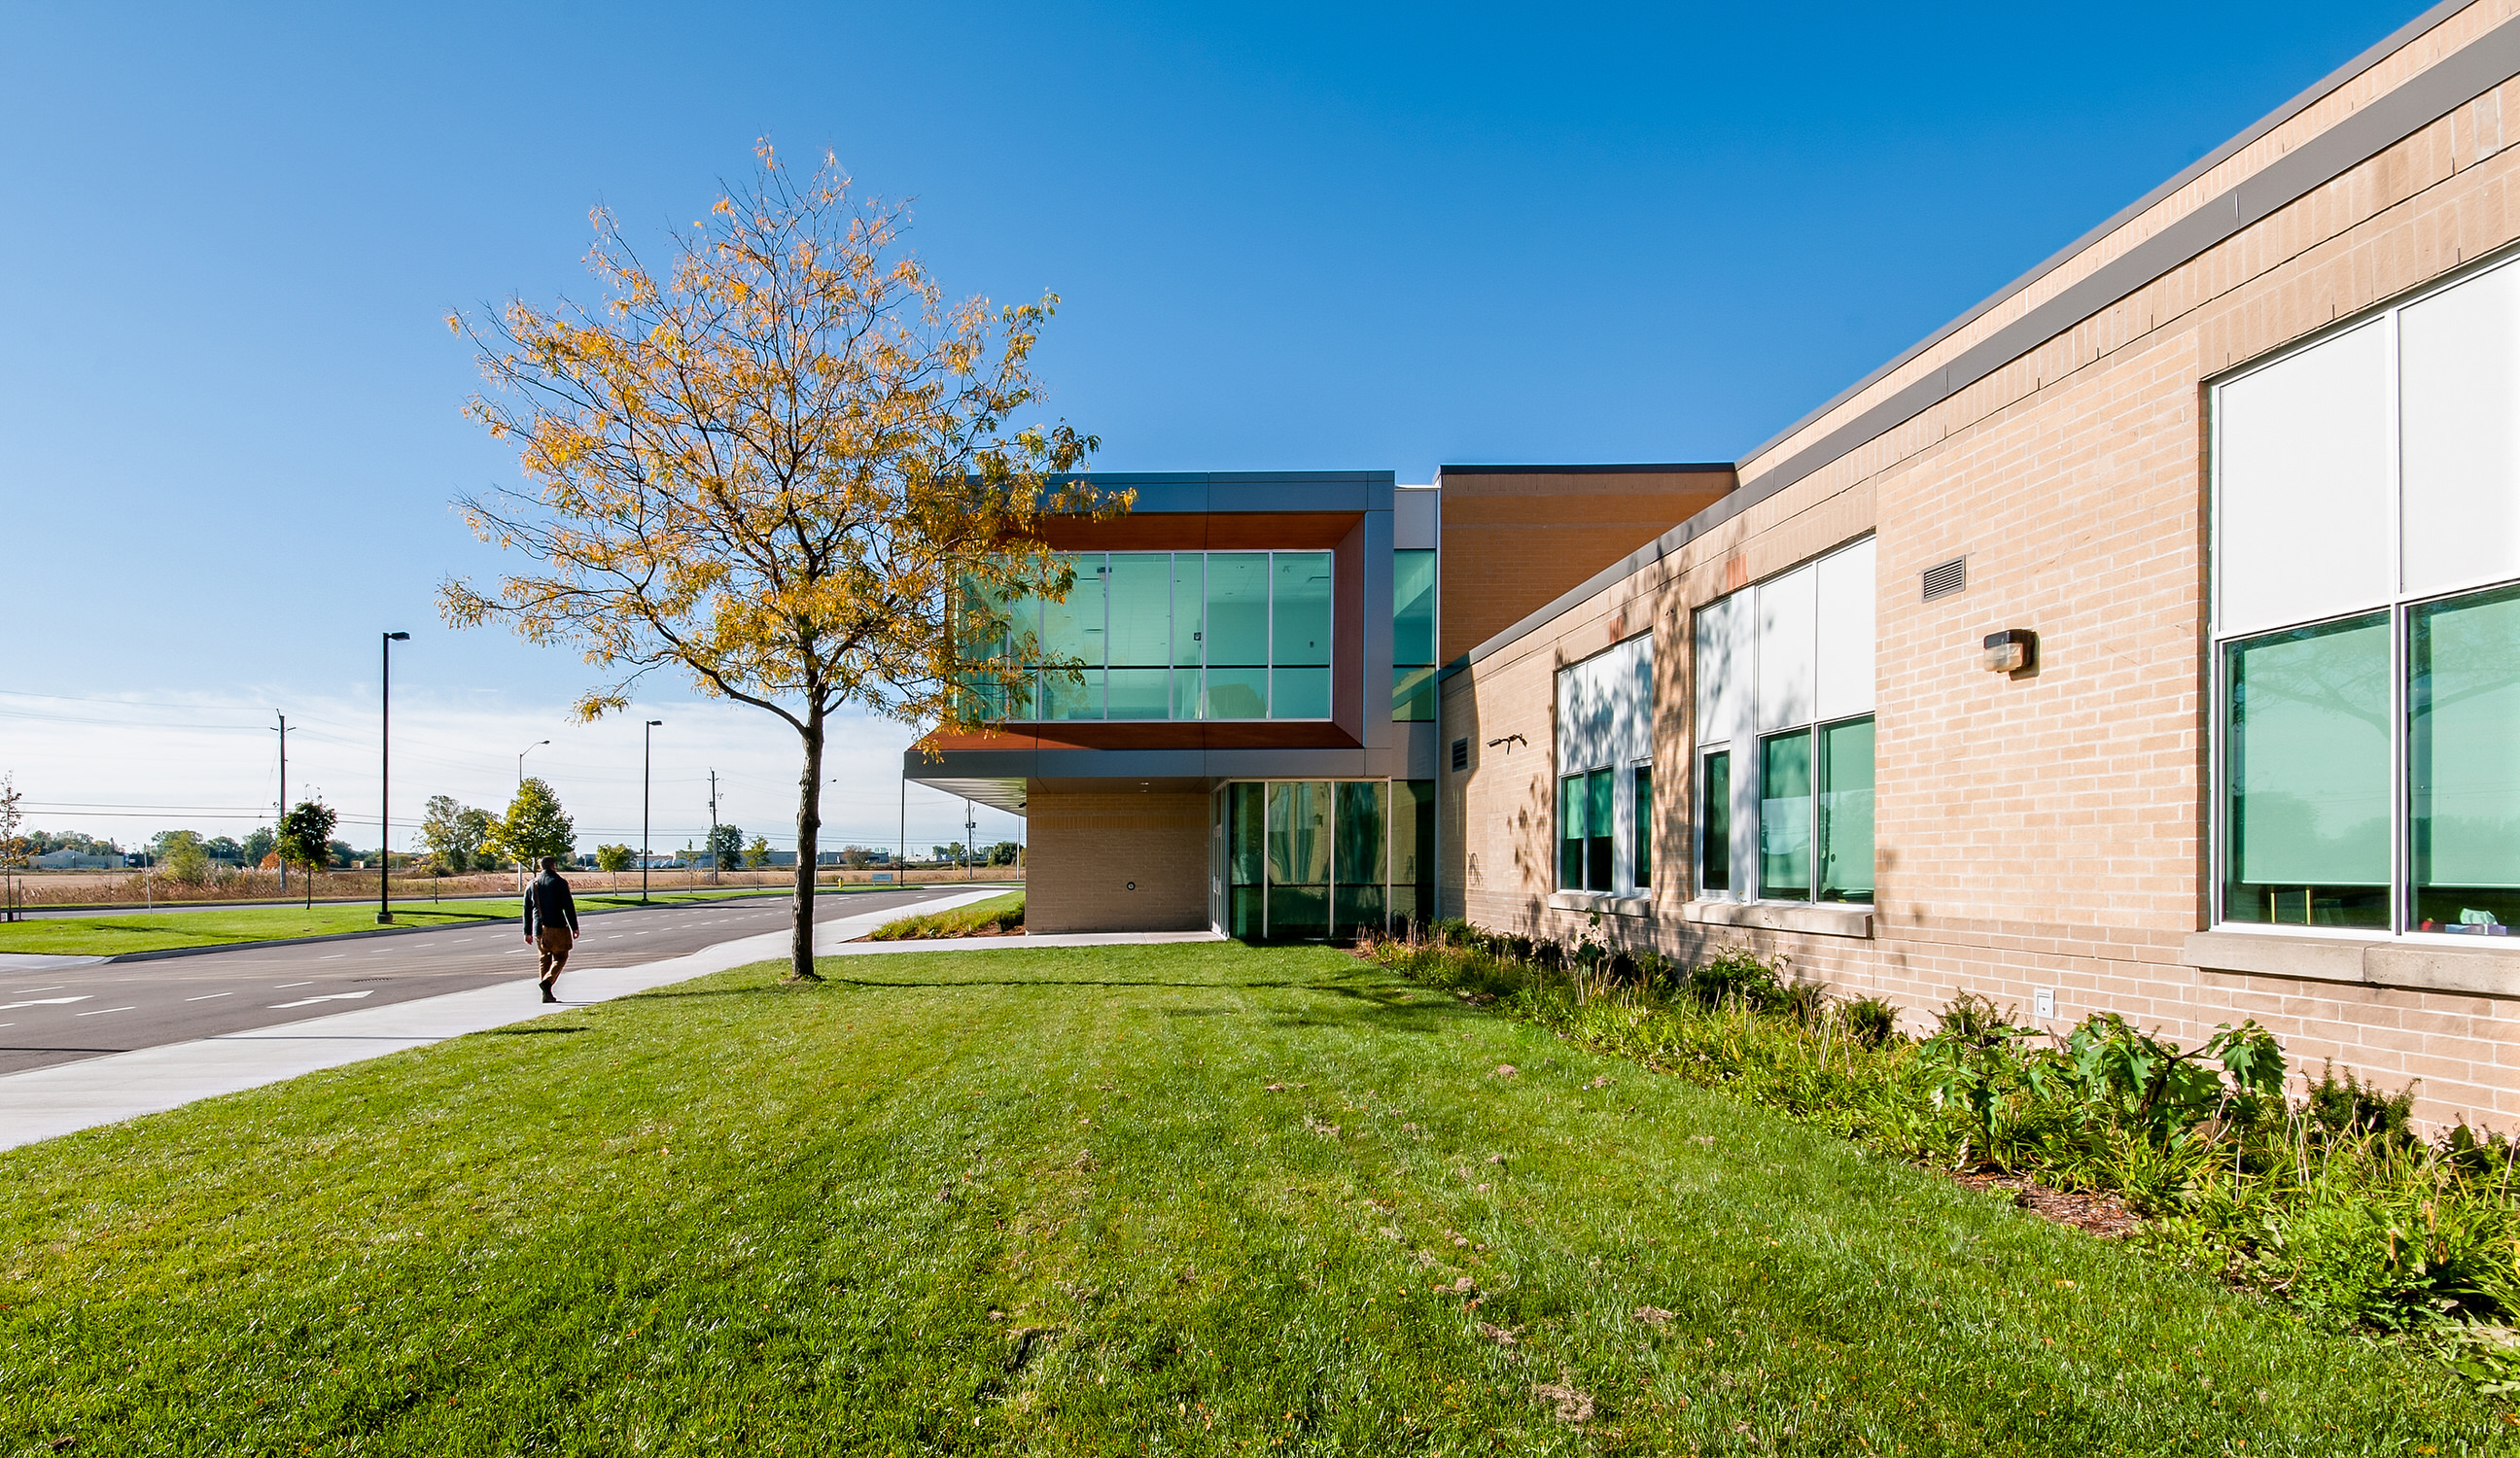 Architectural photography of School by Scott Webb Photography